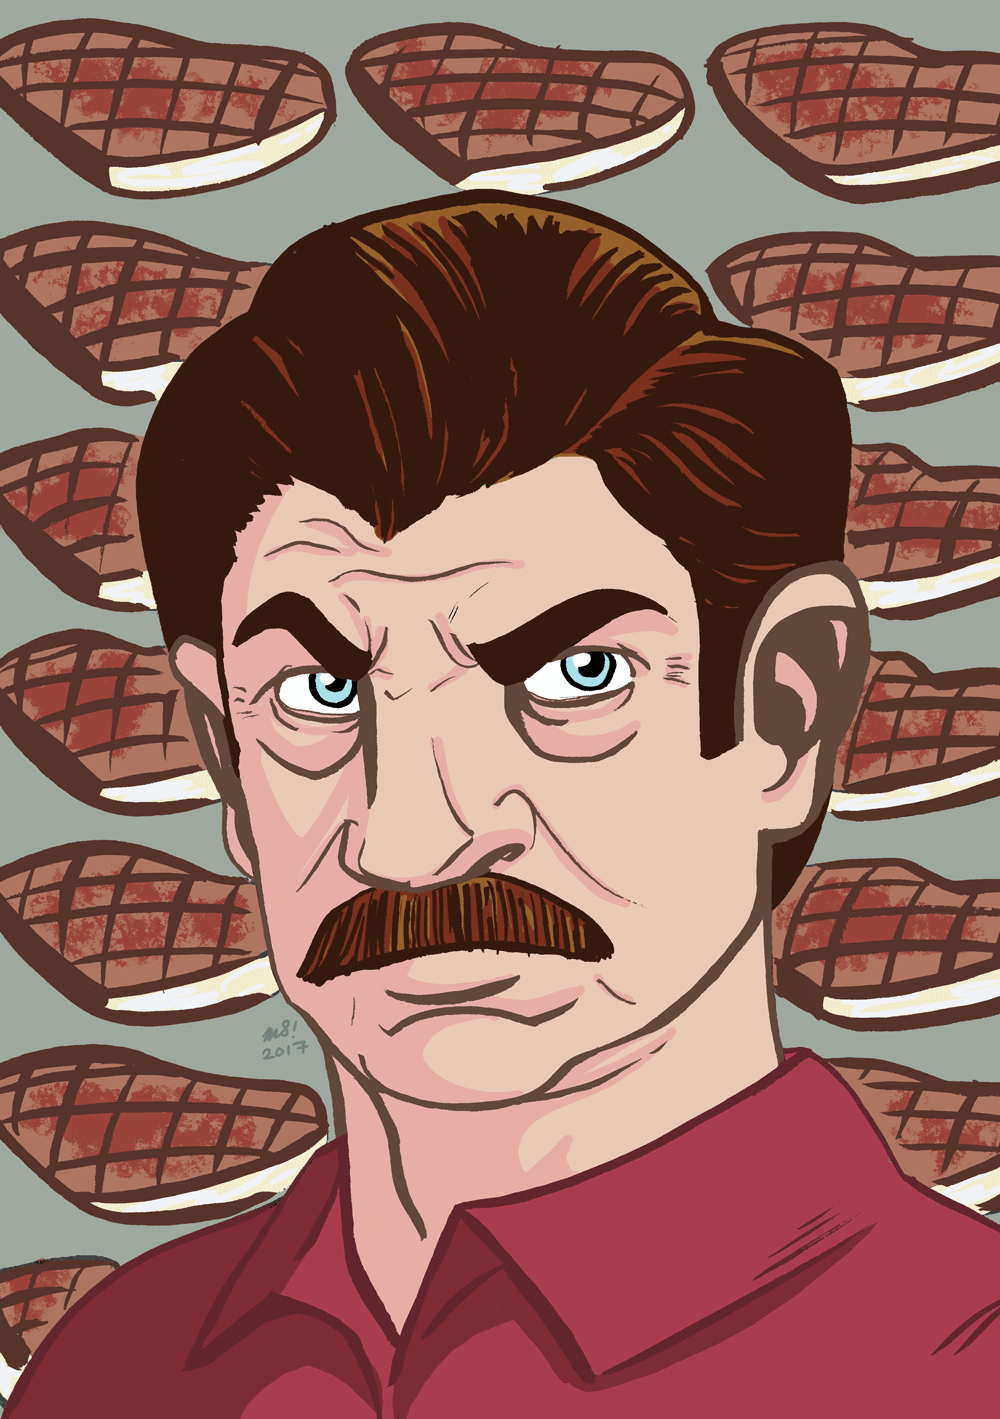 Ron_Swanson.png